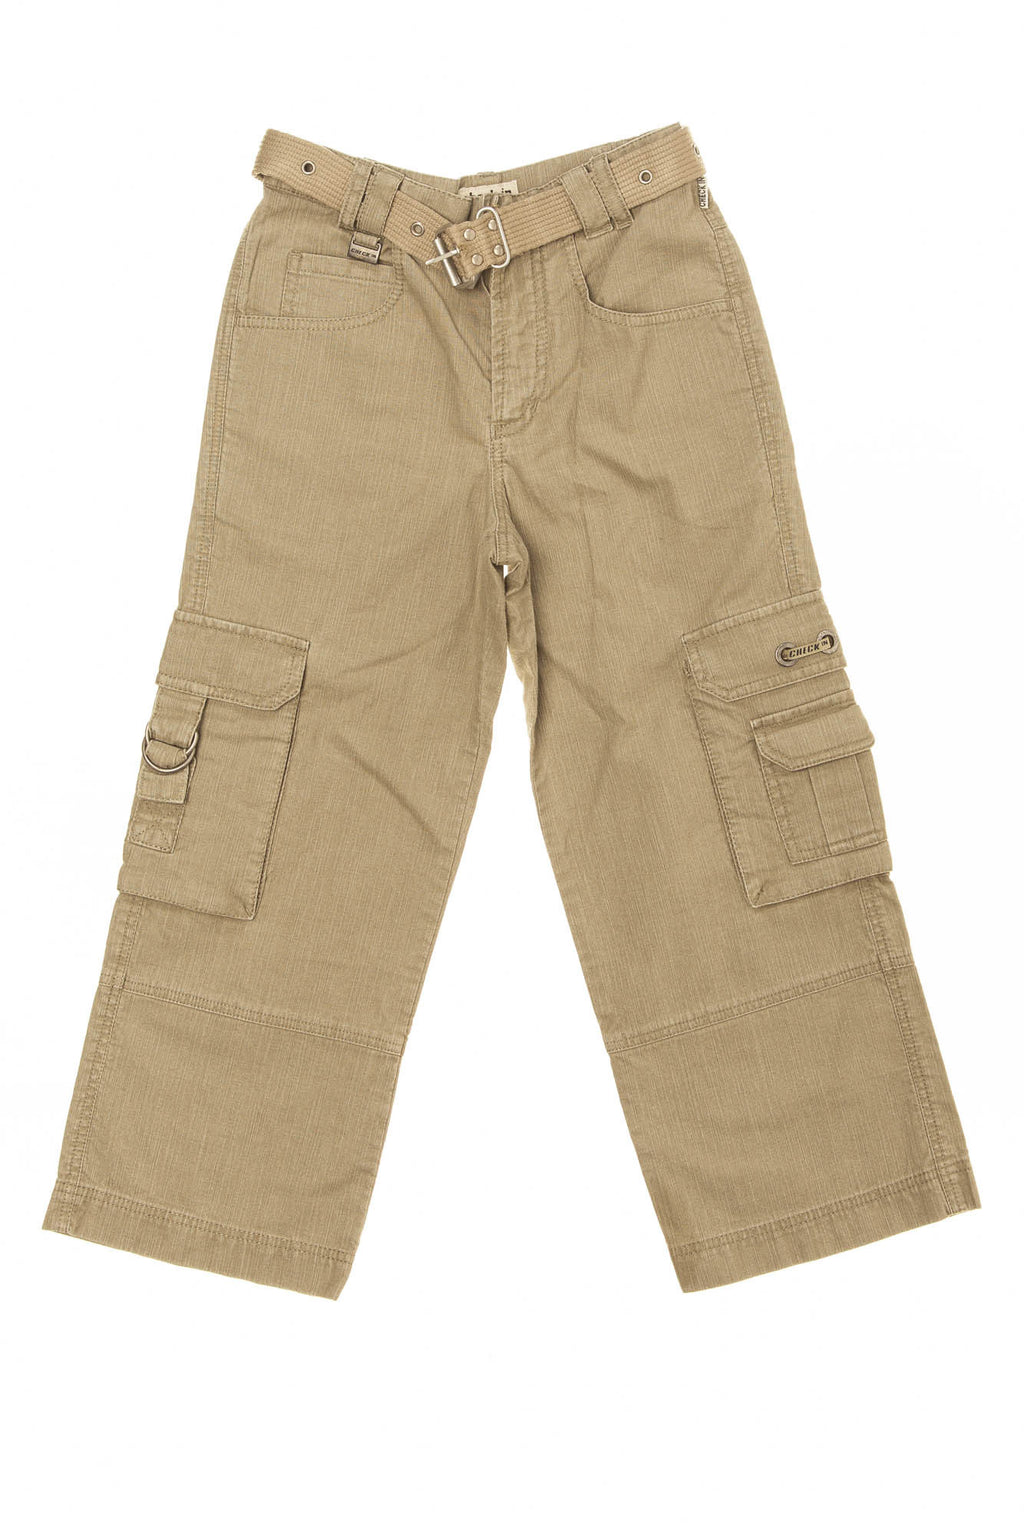 Check In - Khaki Cargo Pants - 16